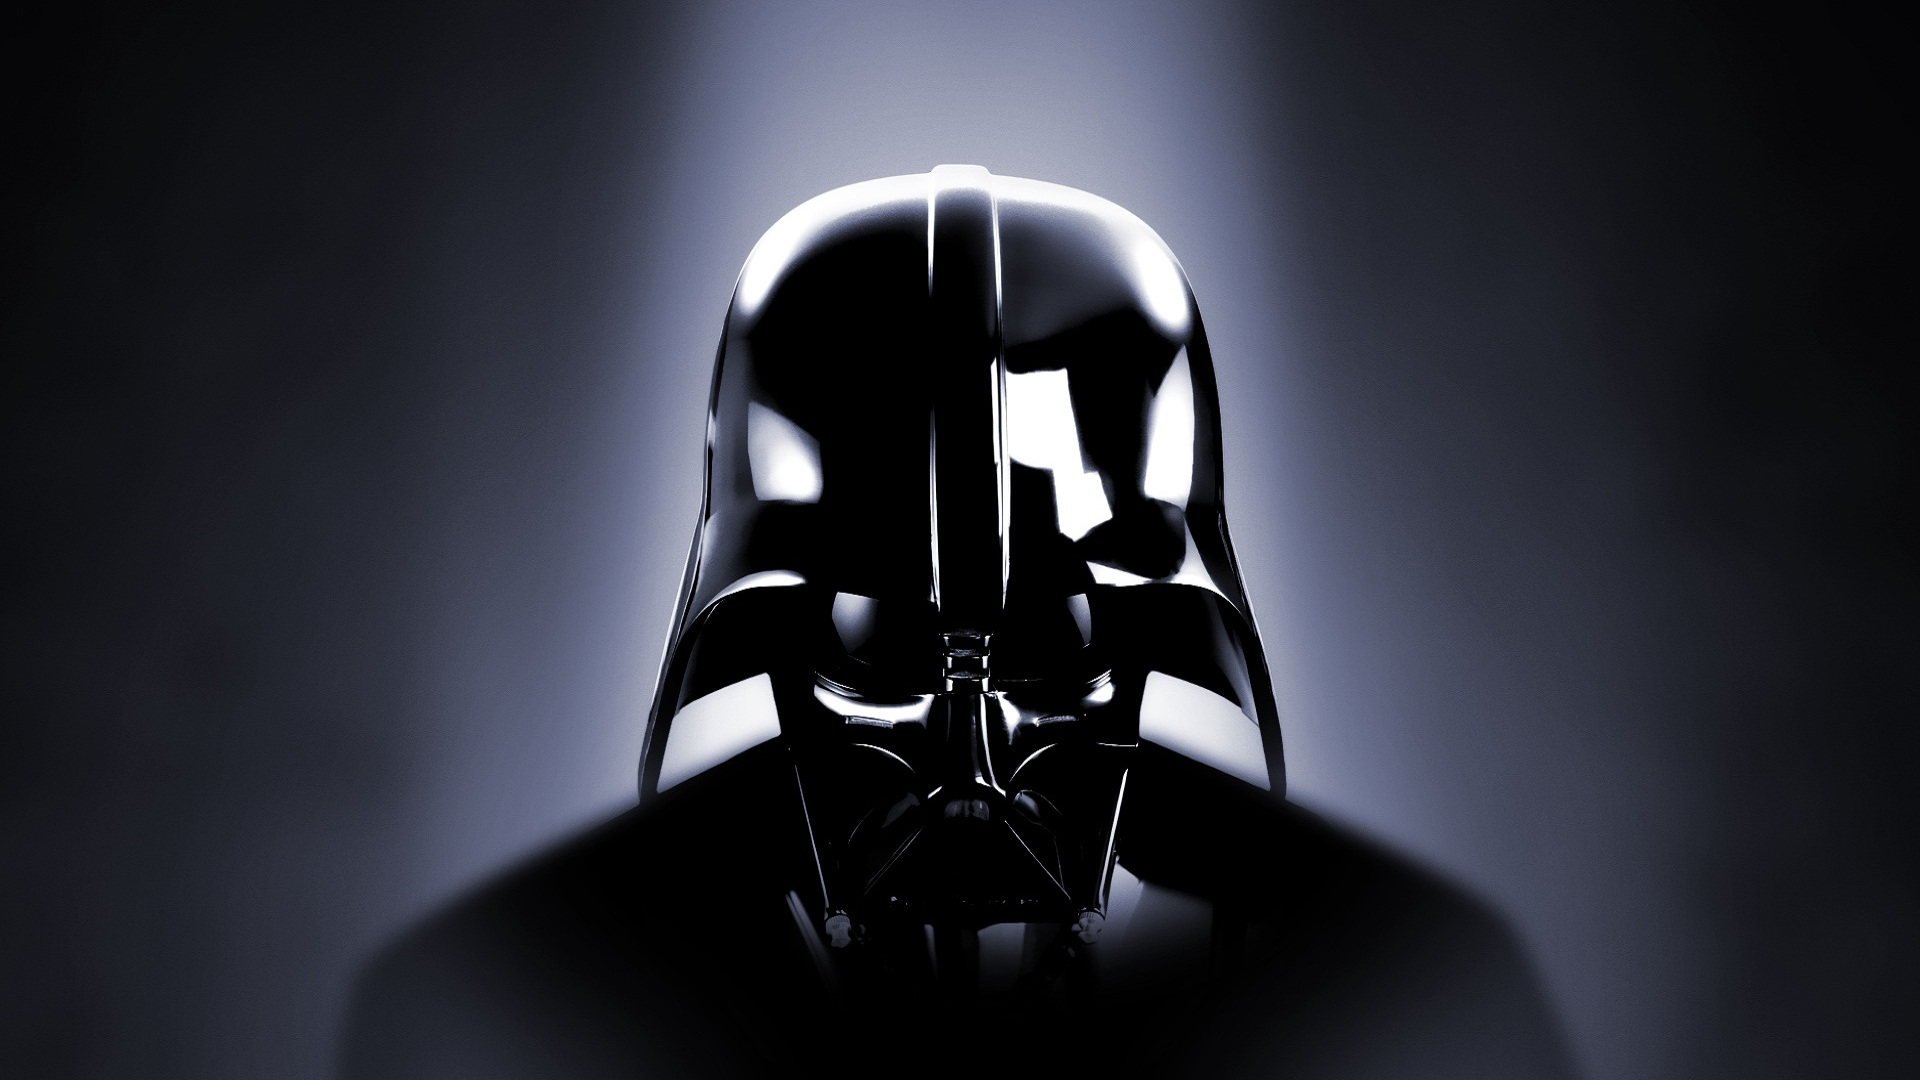 darth vader wallpapers pictures images. Black Bedroom Furniture Sets. Home Design Ideas